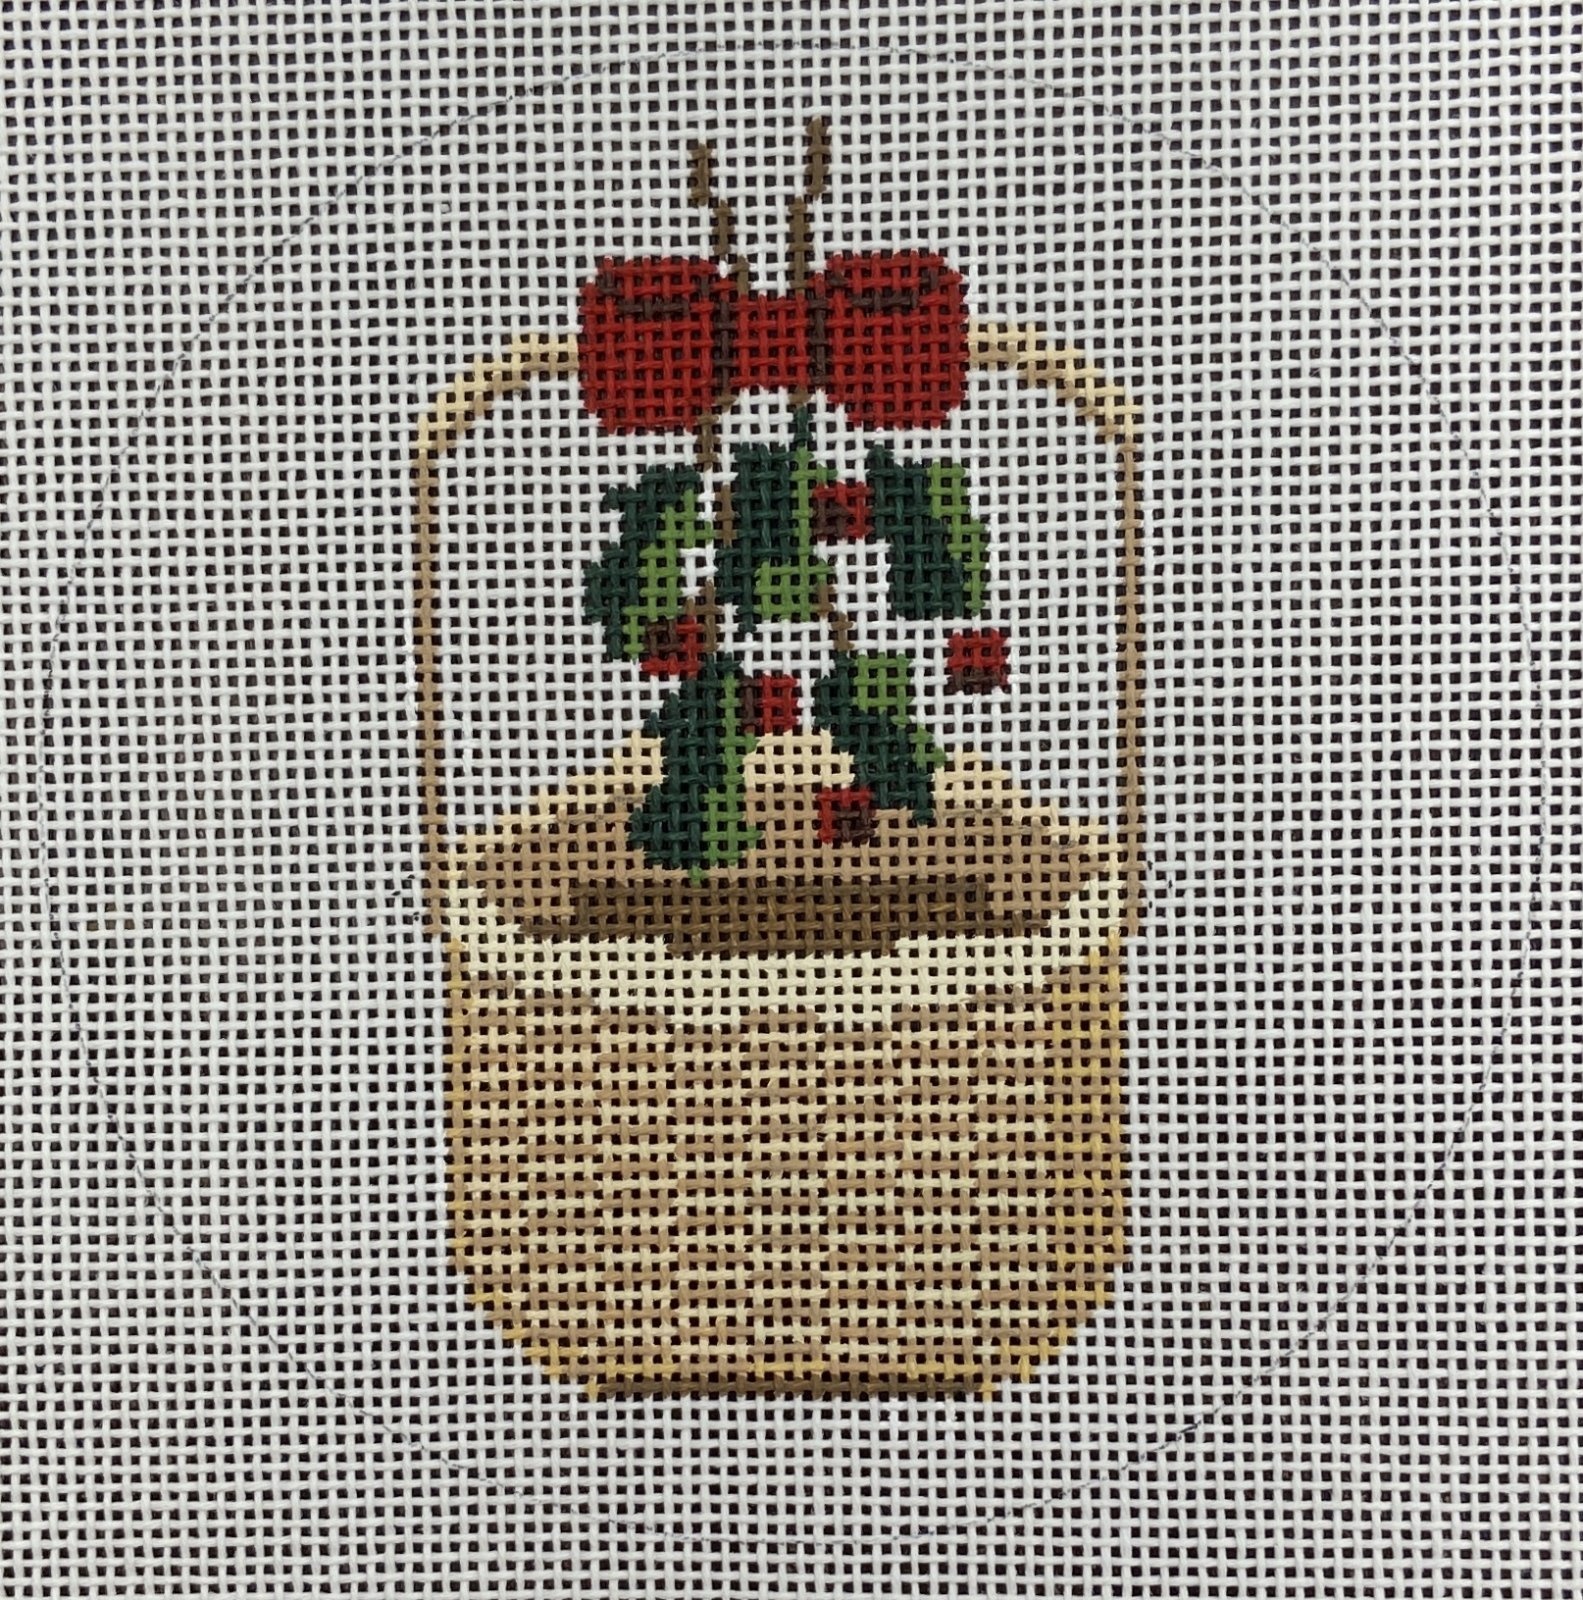 MBM2 Nantucket Basket with Holly and Ribbons CBK Needlepoint